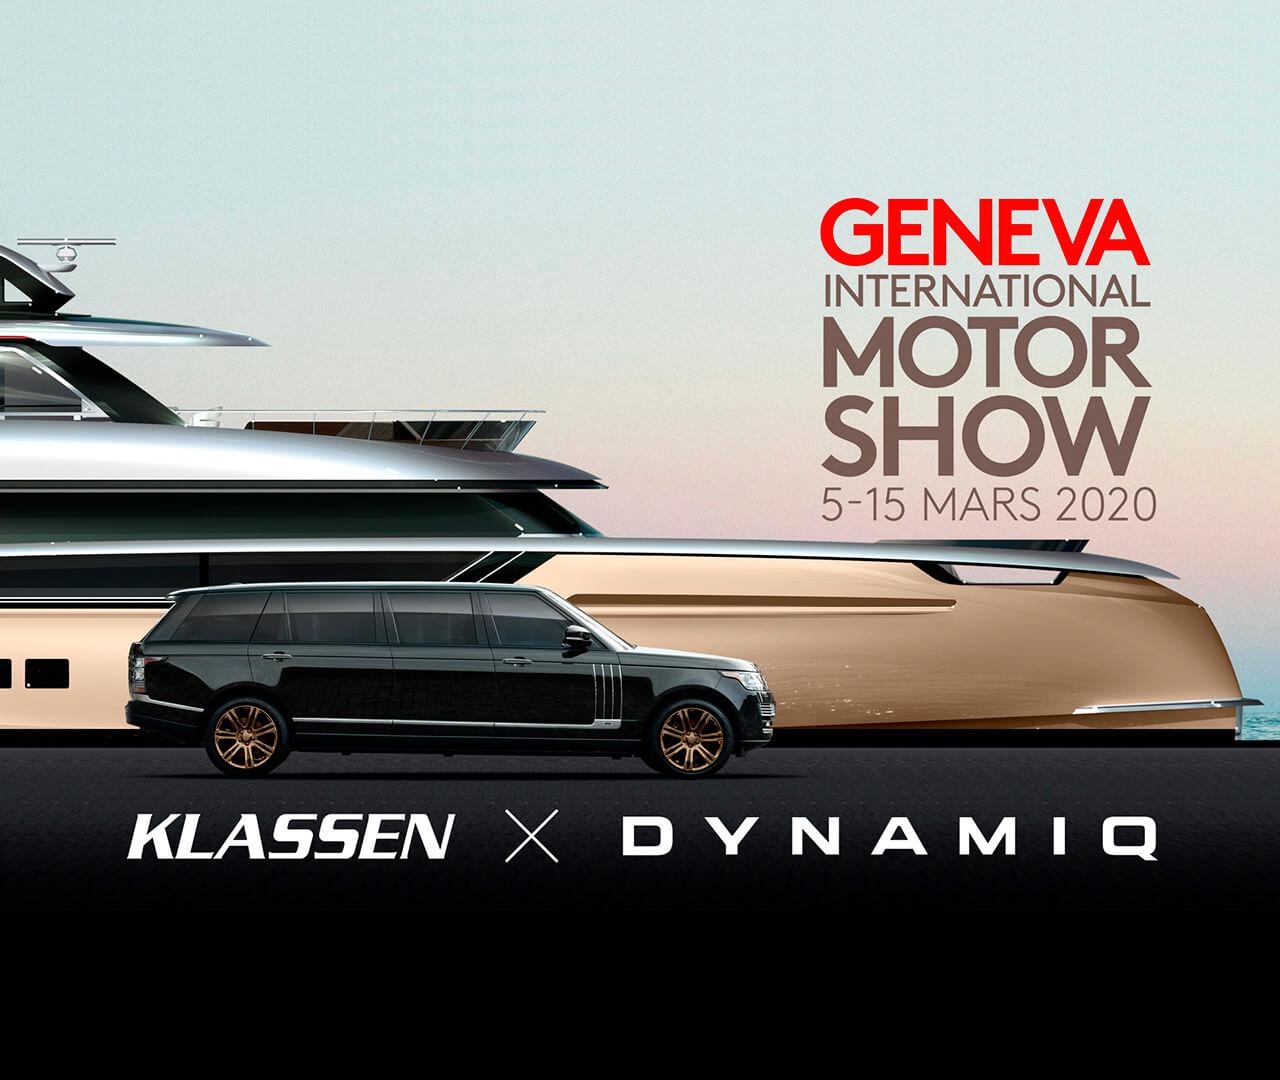 Dynamiq and Klassen joined forces to create the ultimate superyacht experience